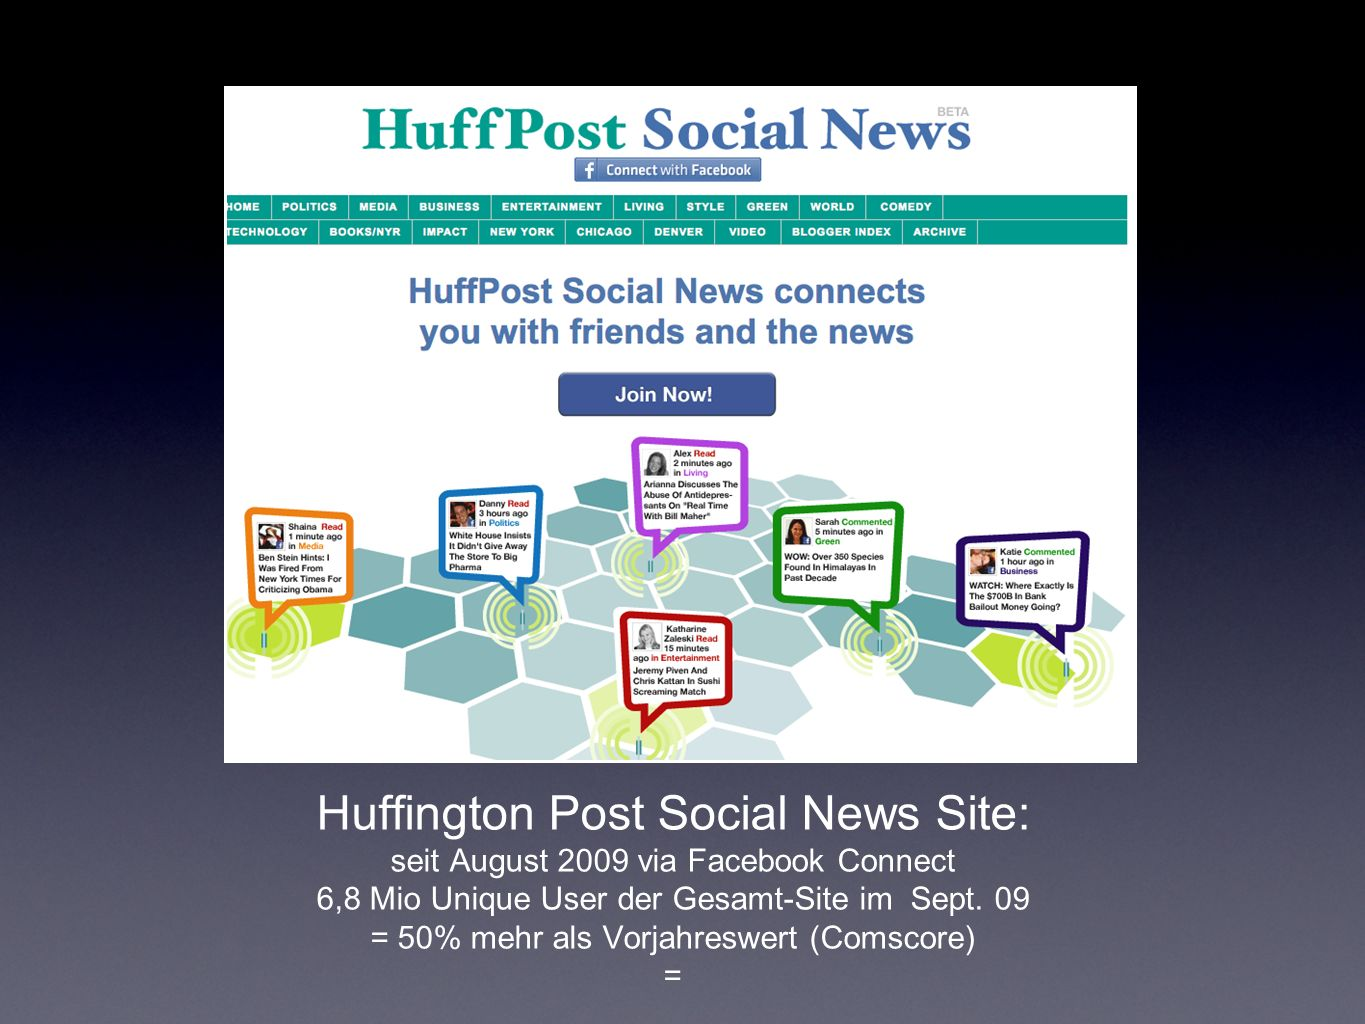 Huffington Post Social News Site: seit August 2009 via Facebook Connect 6,8 Mio Unique User der Gesamt-Site im Sept.